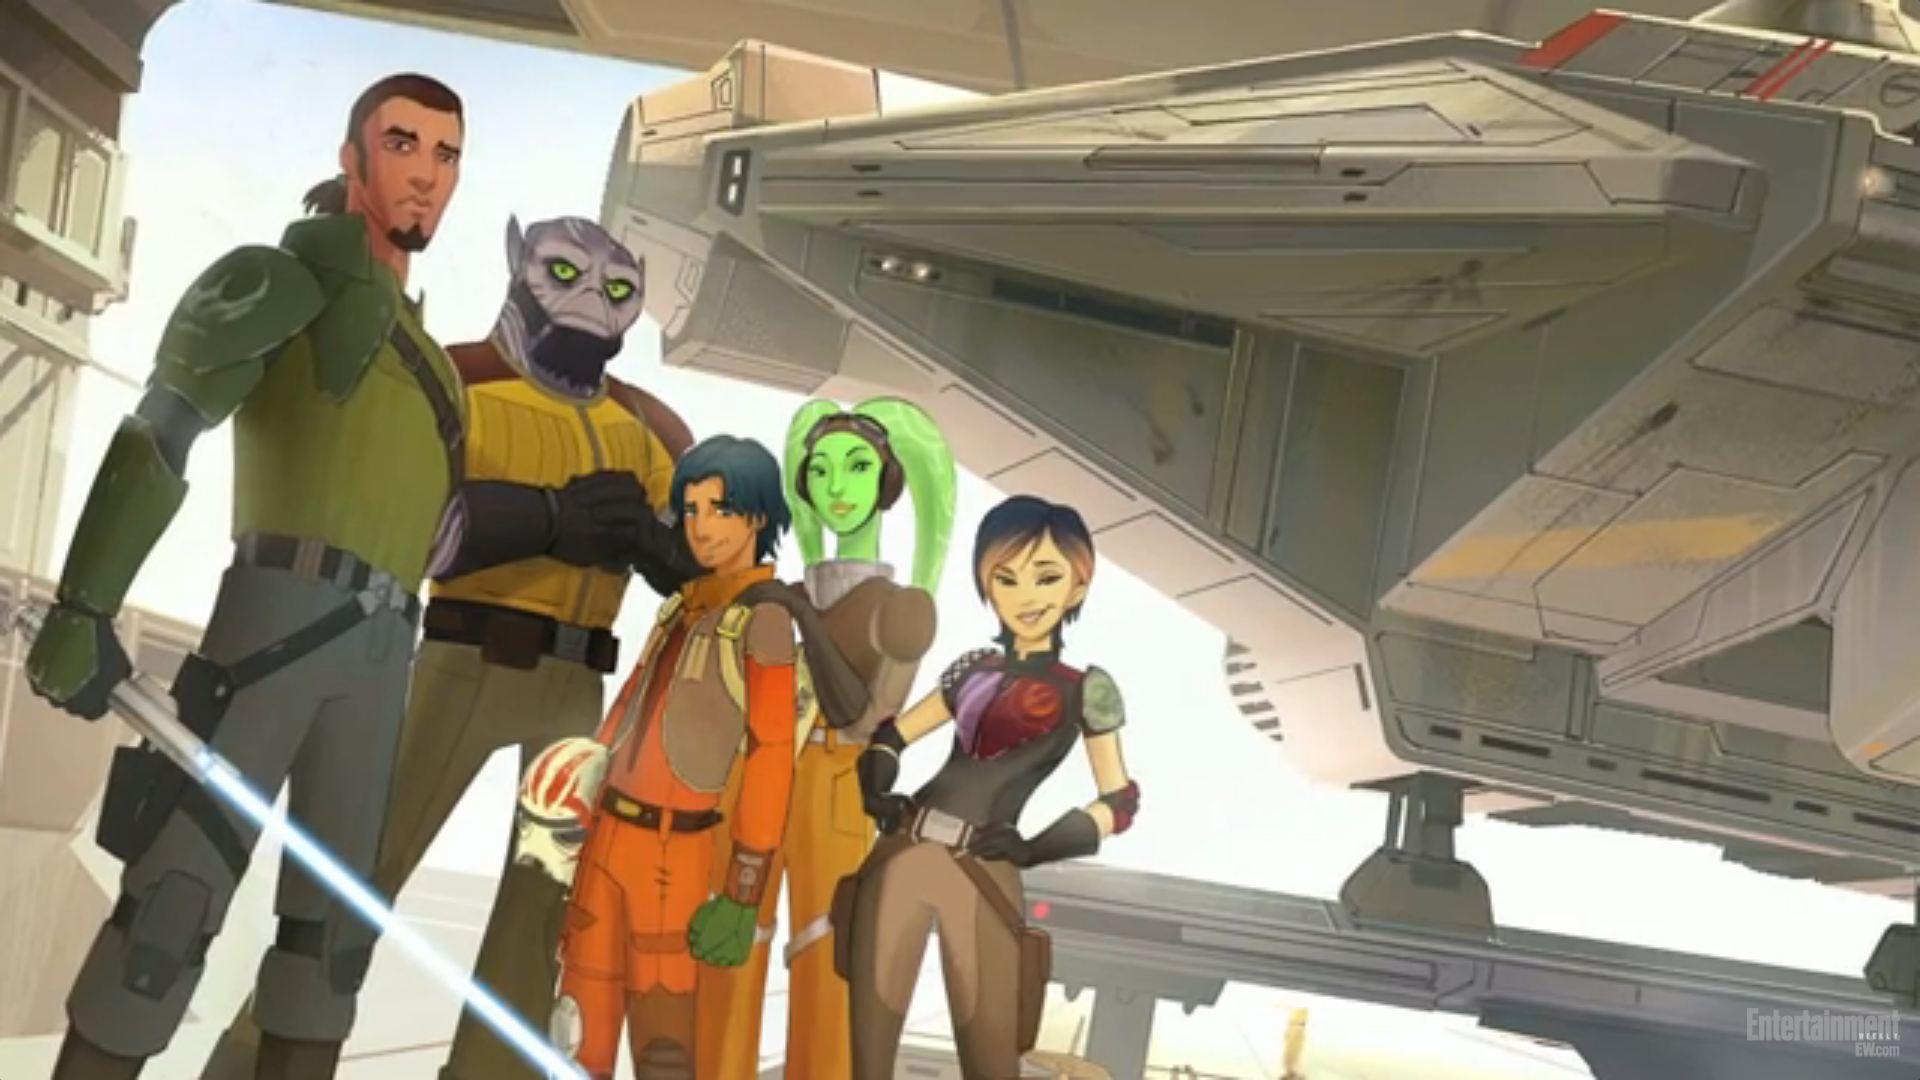 Star Wars Rebels Disney Infinity Characters